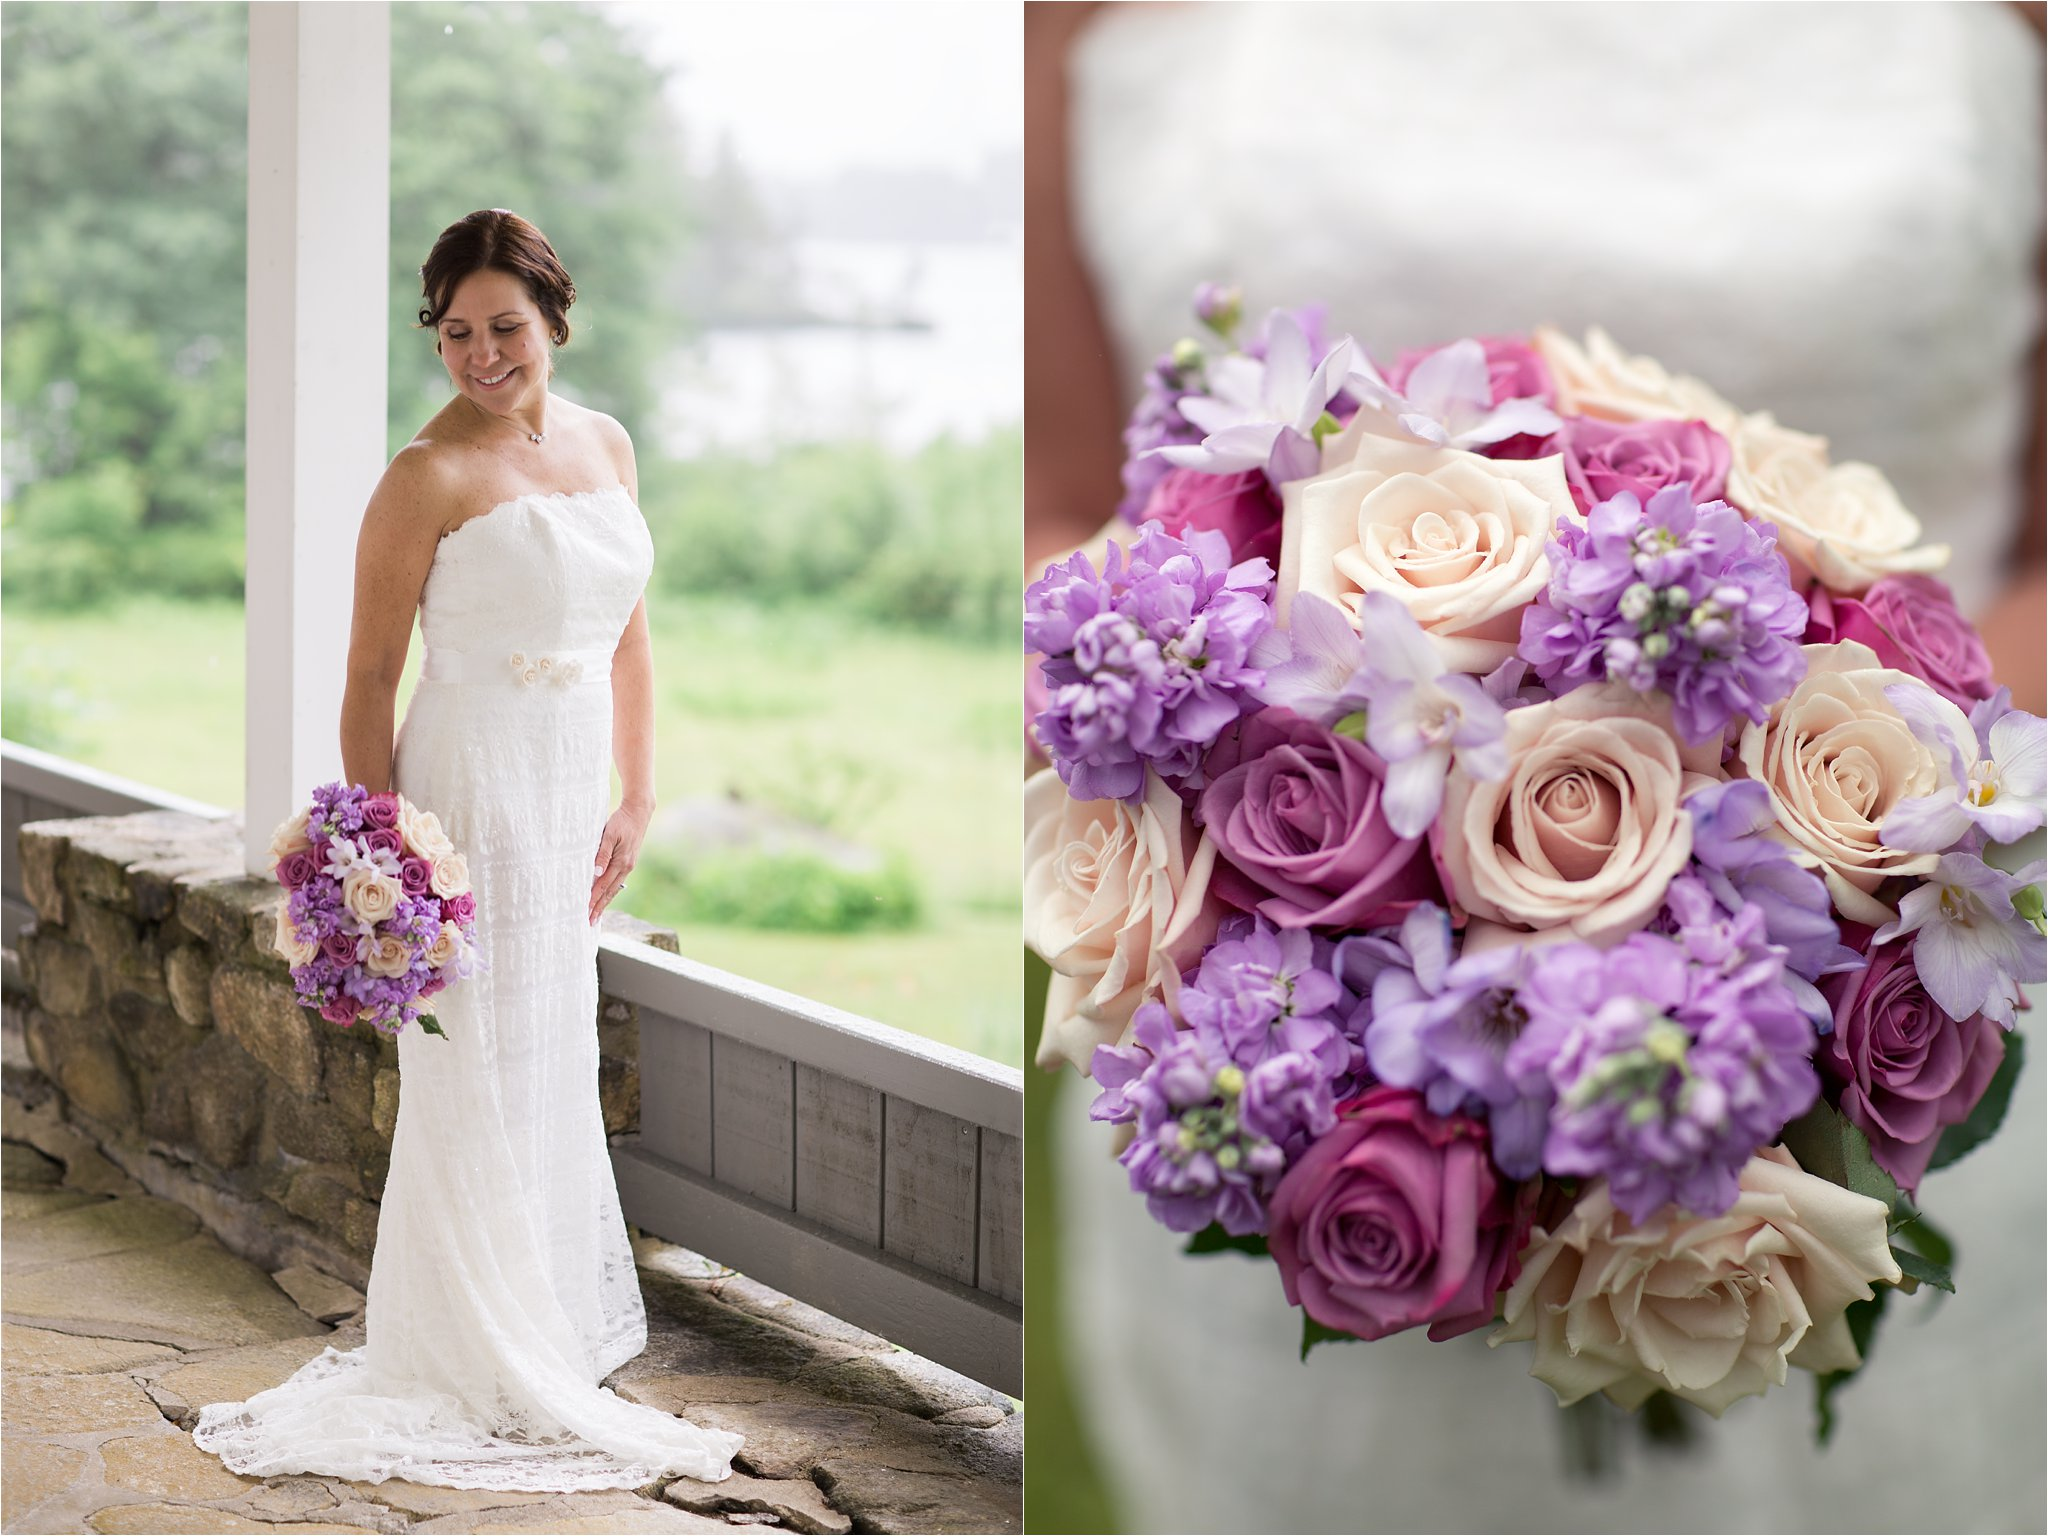 Bridal Portrait and Bridal Bouquet (C) Maundy Mitchell